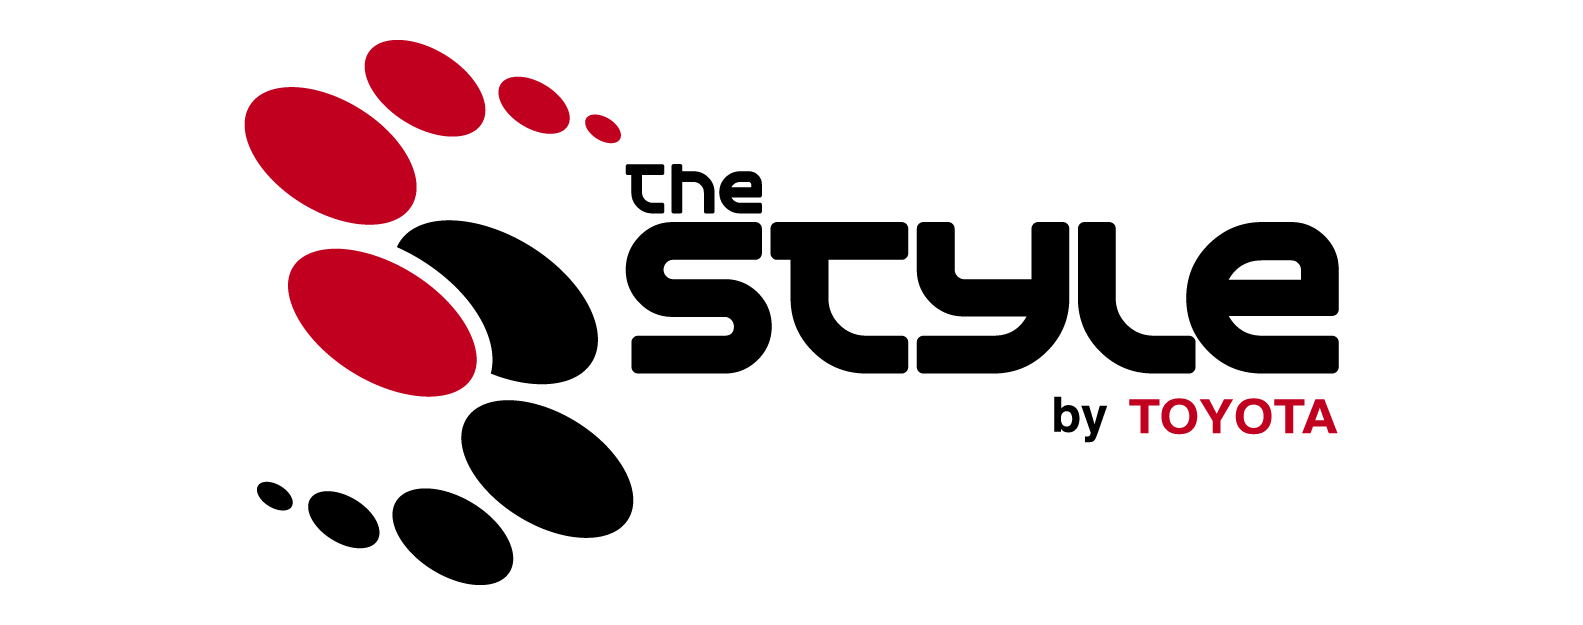 The style logo